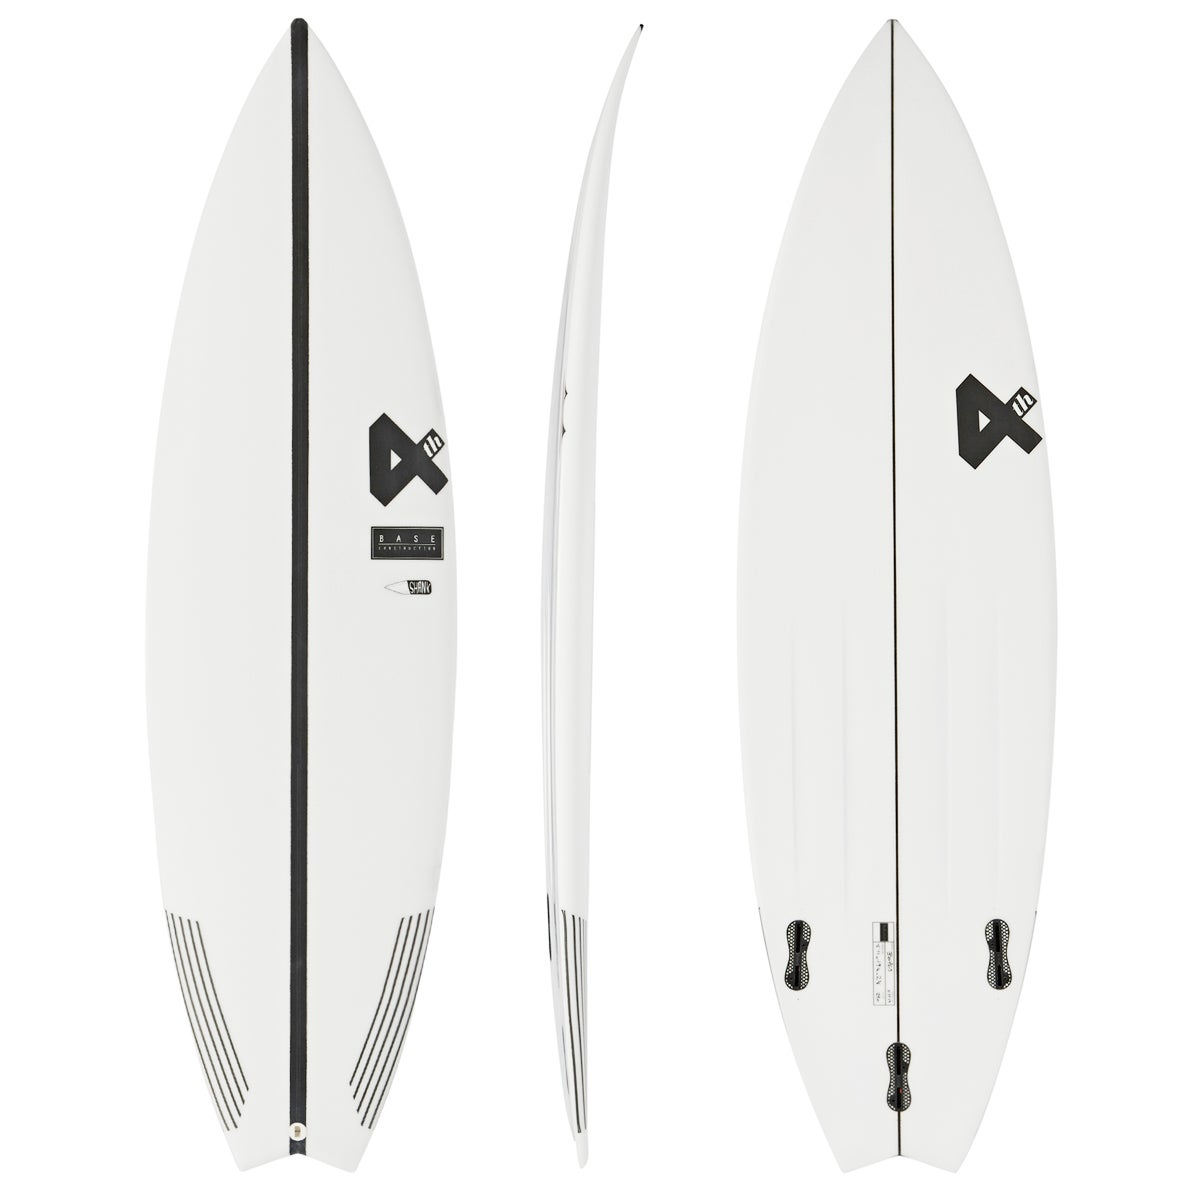 Fourth Surfboards Belly Shank Base Construction FCS II 3 Fin Surfboard - White Black